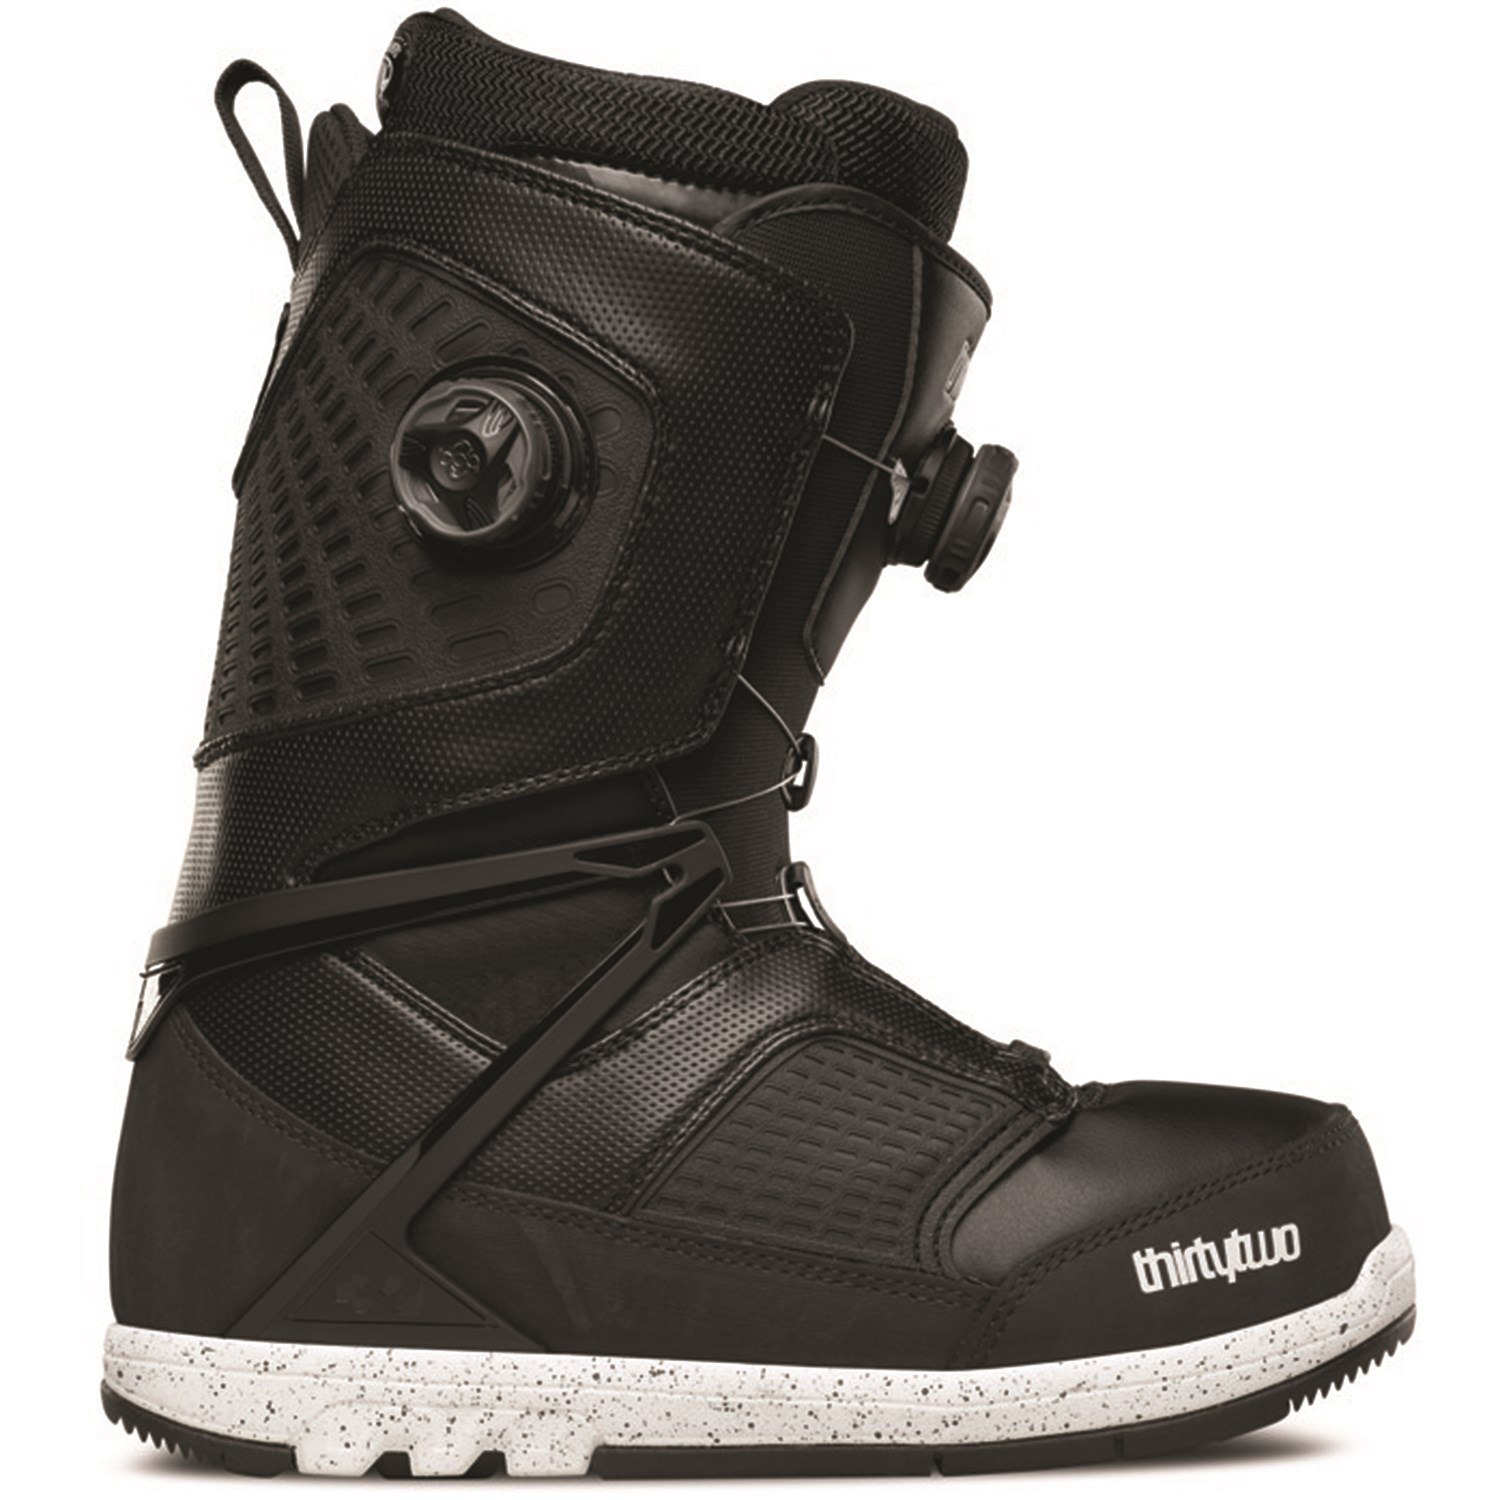 Chaussures Snowboard Boa